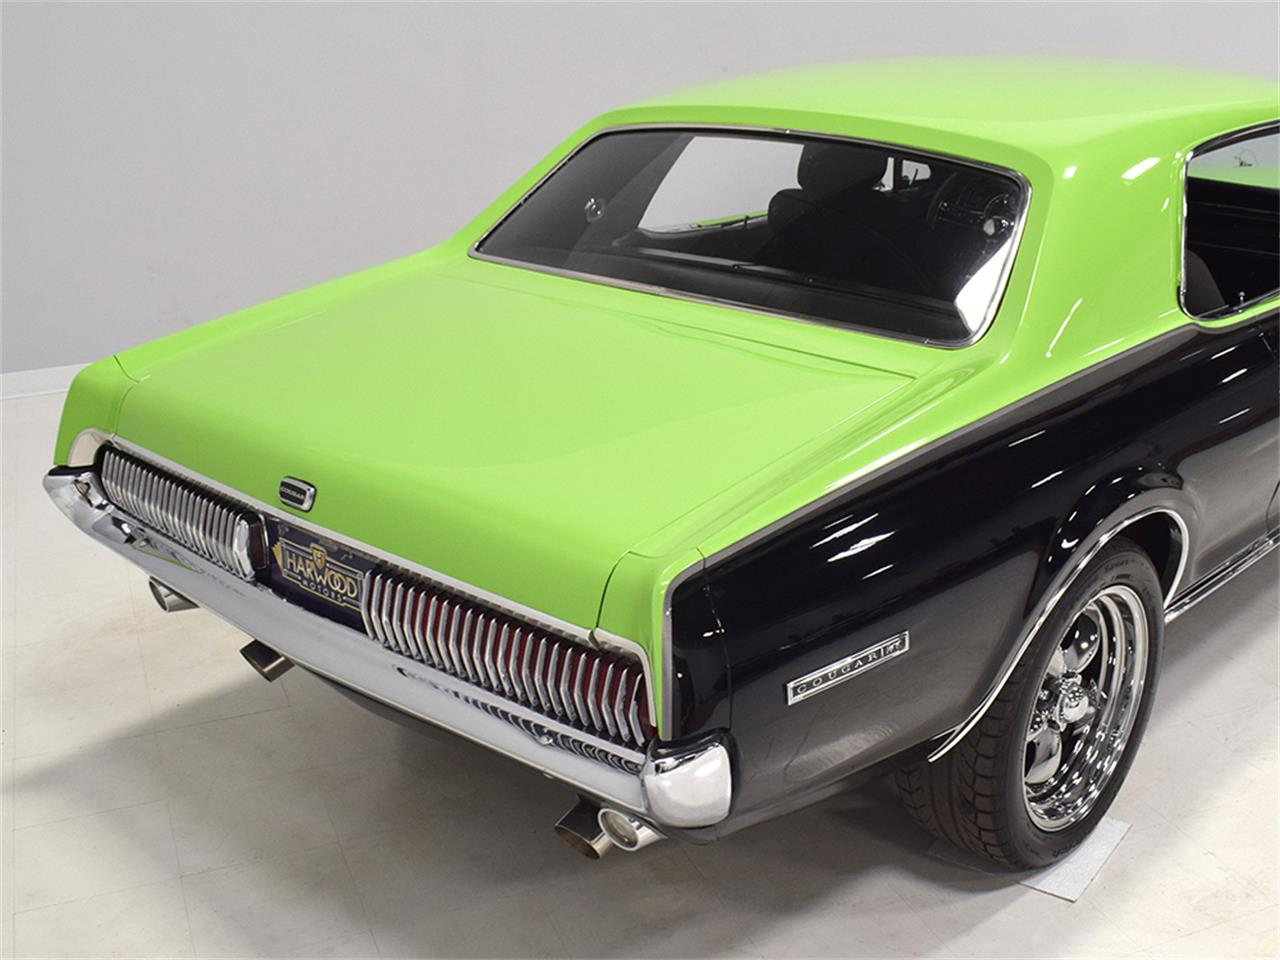 Large Picture of '67 Mercury Cougar located in Macedonia Ohio Offered by Harwood Motors, LTD. - MH5X